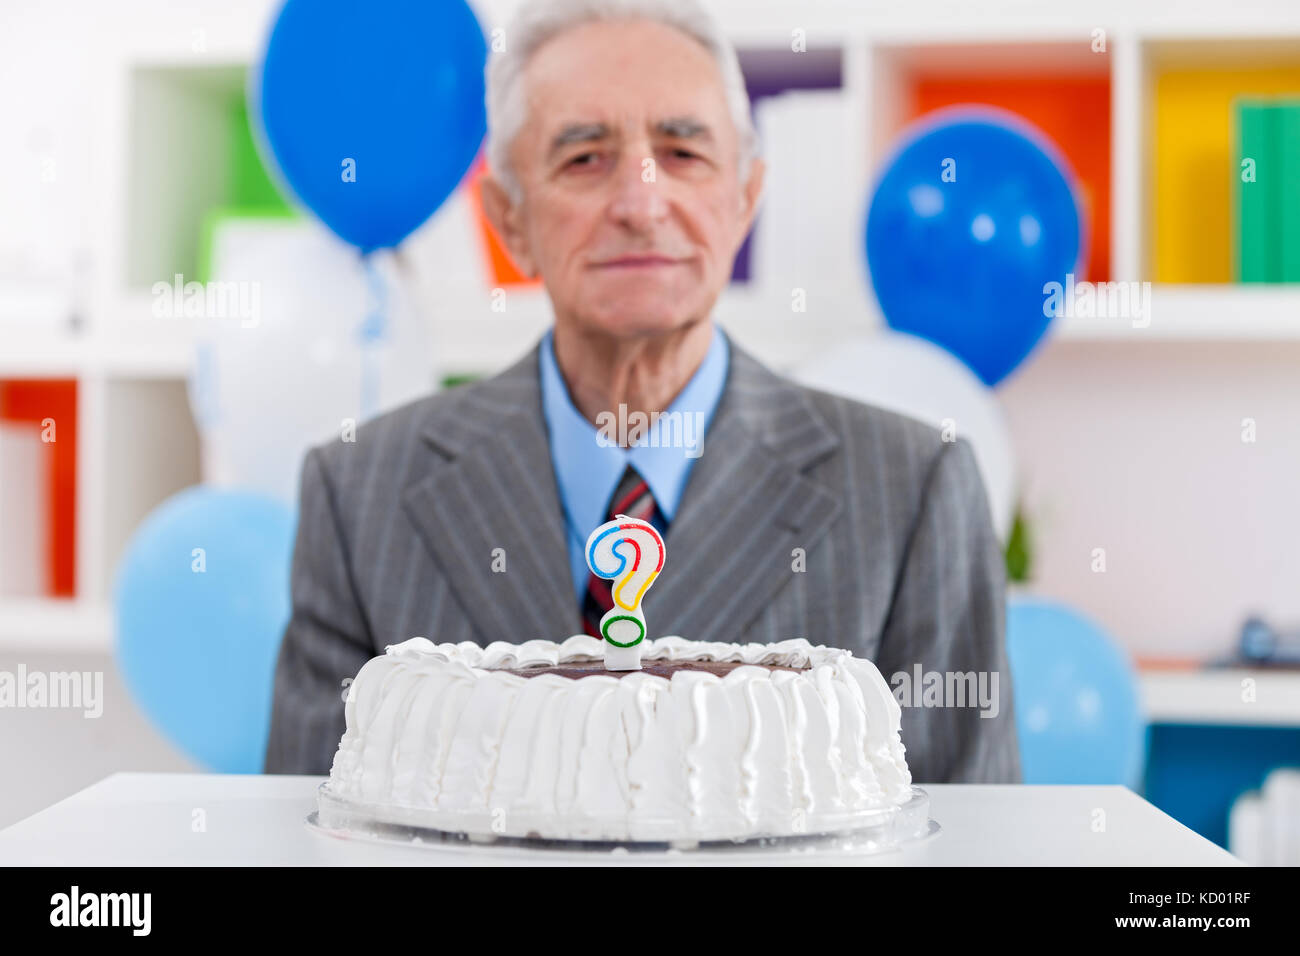 Senior Man With Birthday Cake A Question Mark Candle On It